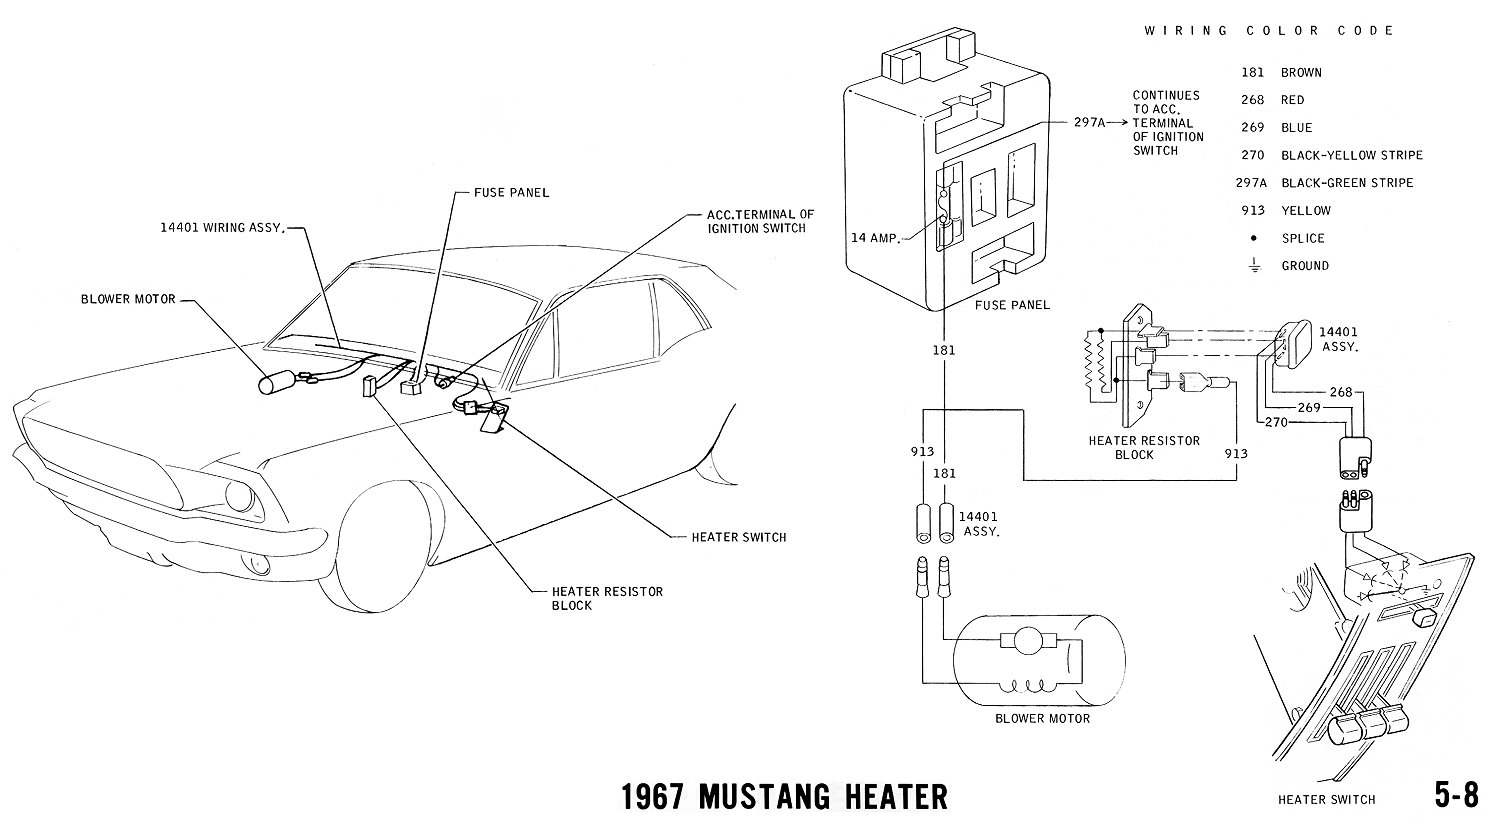 67 mustang ammeter gauge wiring diagram electrical drawing wiring 1967 mustang wiring and vacuum diagrams average joe restoration rh averagejoerestoration com amp gauge wiring diagram amp gauge wiring diagram freerunsca Choice Image